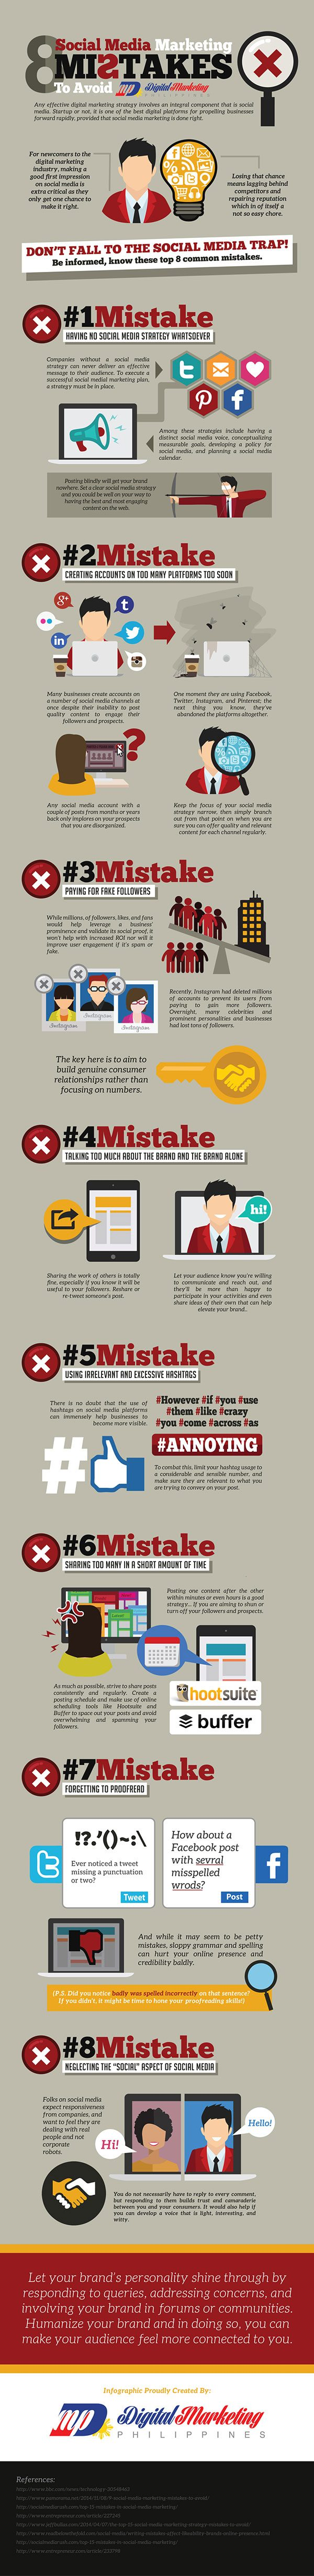 8 Social Media Marketing Mistakes to Avoid (Infographic) - An Infographic from Digital Marketing Philippines